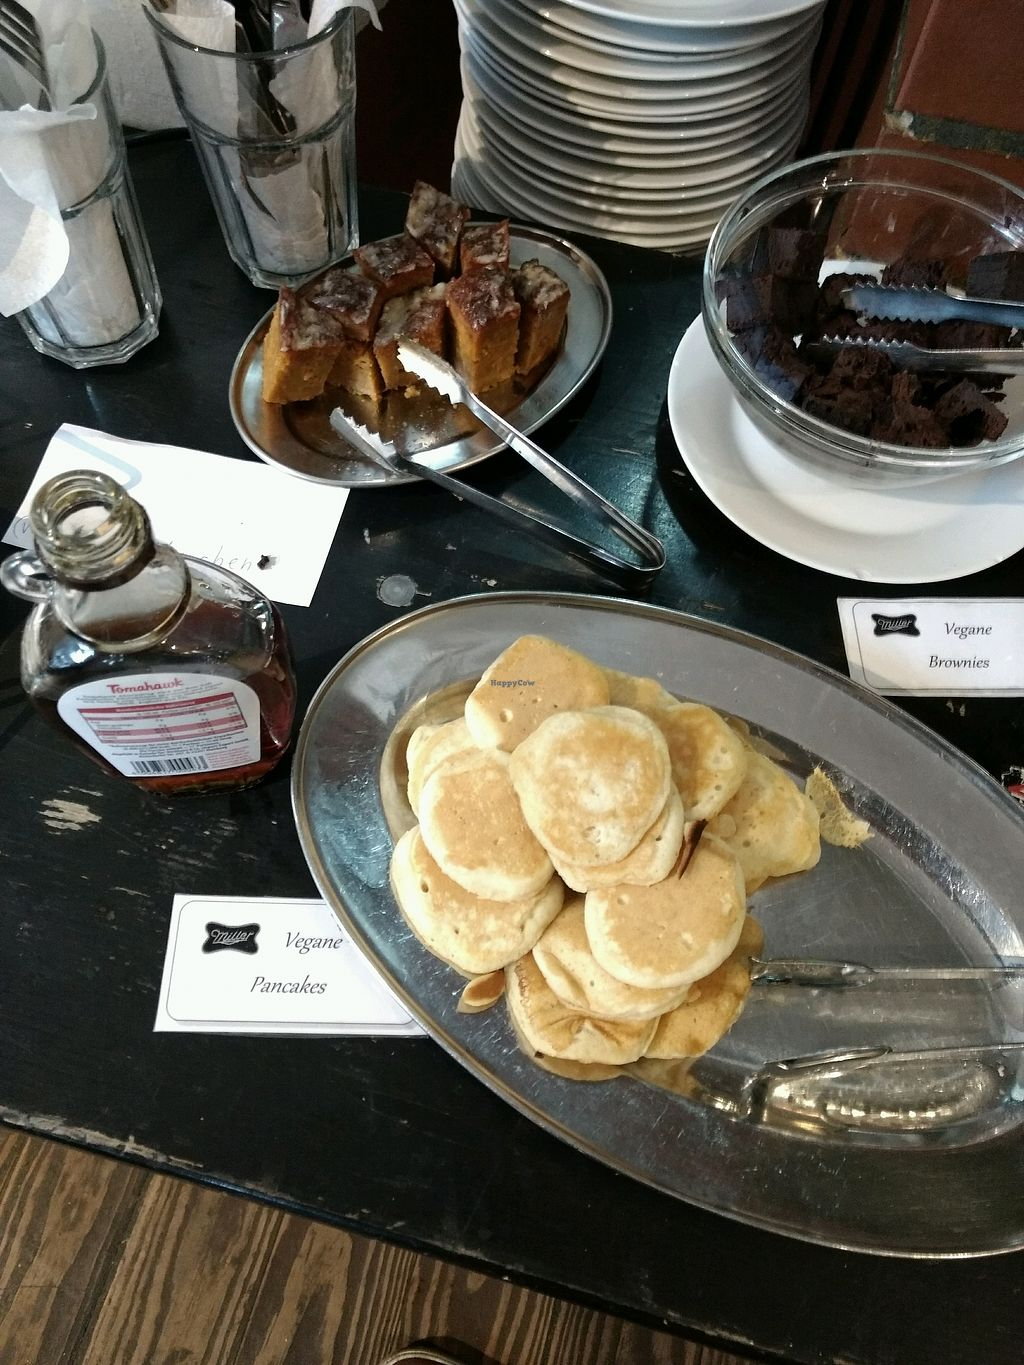 "Photo of Cafe Miller  by <a href=""/members/profile/craigmc"">craigmc</a> <br/>breakfast <br/> March 10, 2018  - <a href='/contact/abuse/image/33633/368823'>Report</a>"